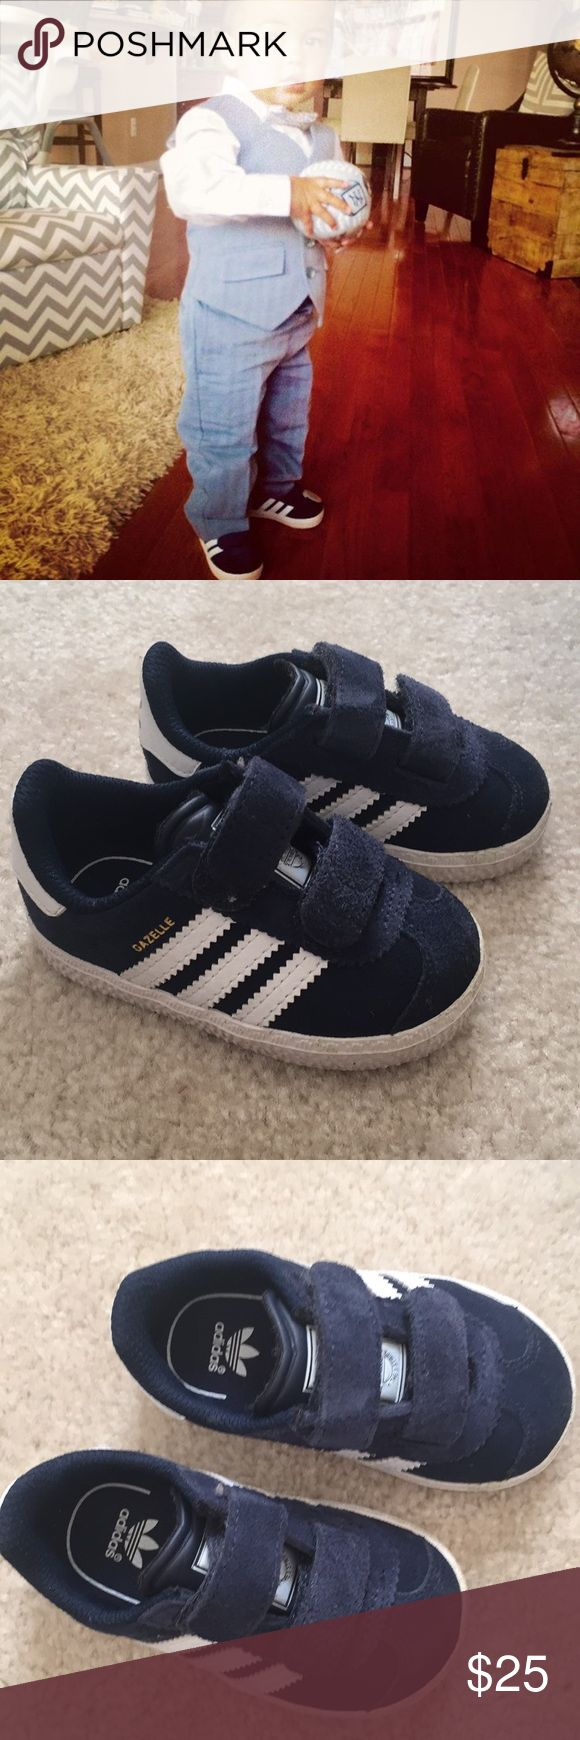 ADIDAS GAZELLE 2 BABY SIZE 4K Used once so in great condition.  My son wore this when he was 1.5 years old for a wedding. One shoe has grass on Velcro's as pictured. Will come with box.  Ask me about the suit he's wearing if you're interested. PLEASE SCROLL DOWN FOR MY KIDS STUFF adidas Shoes Sneakers